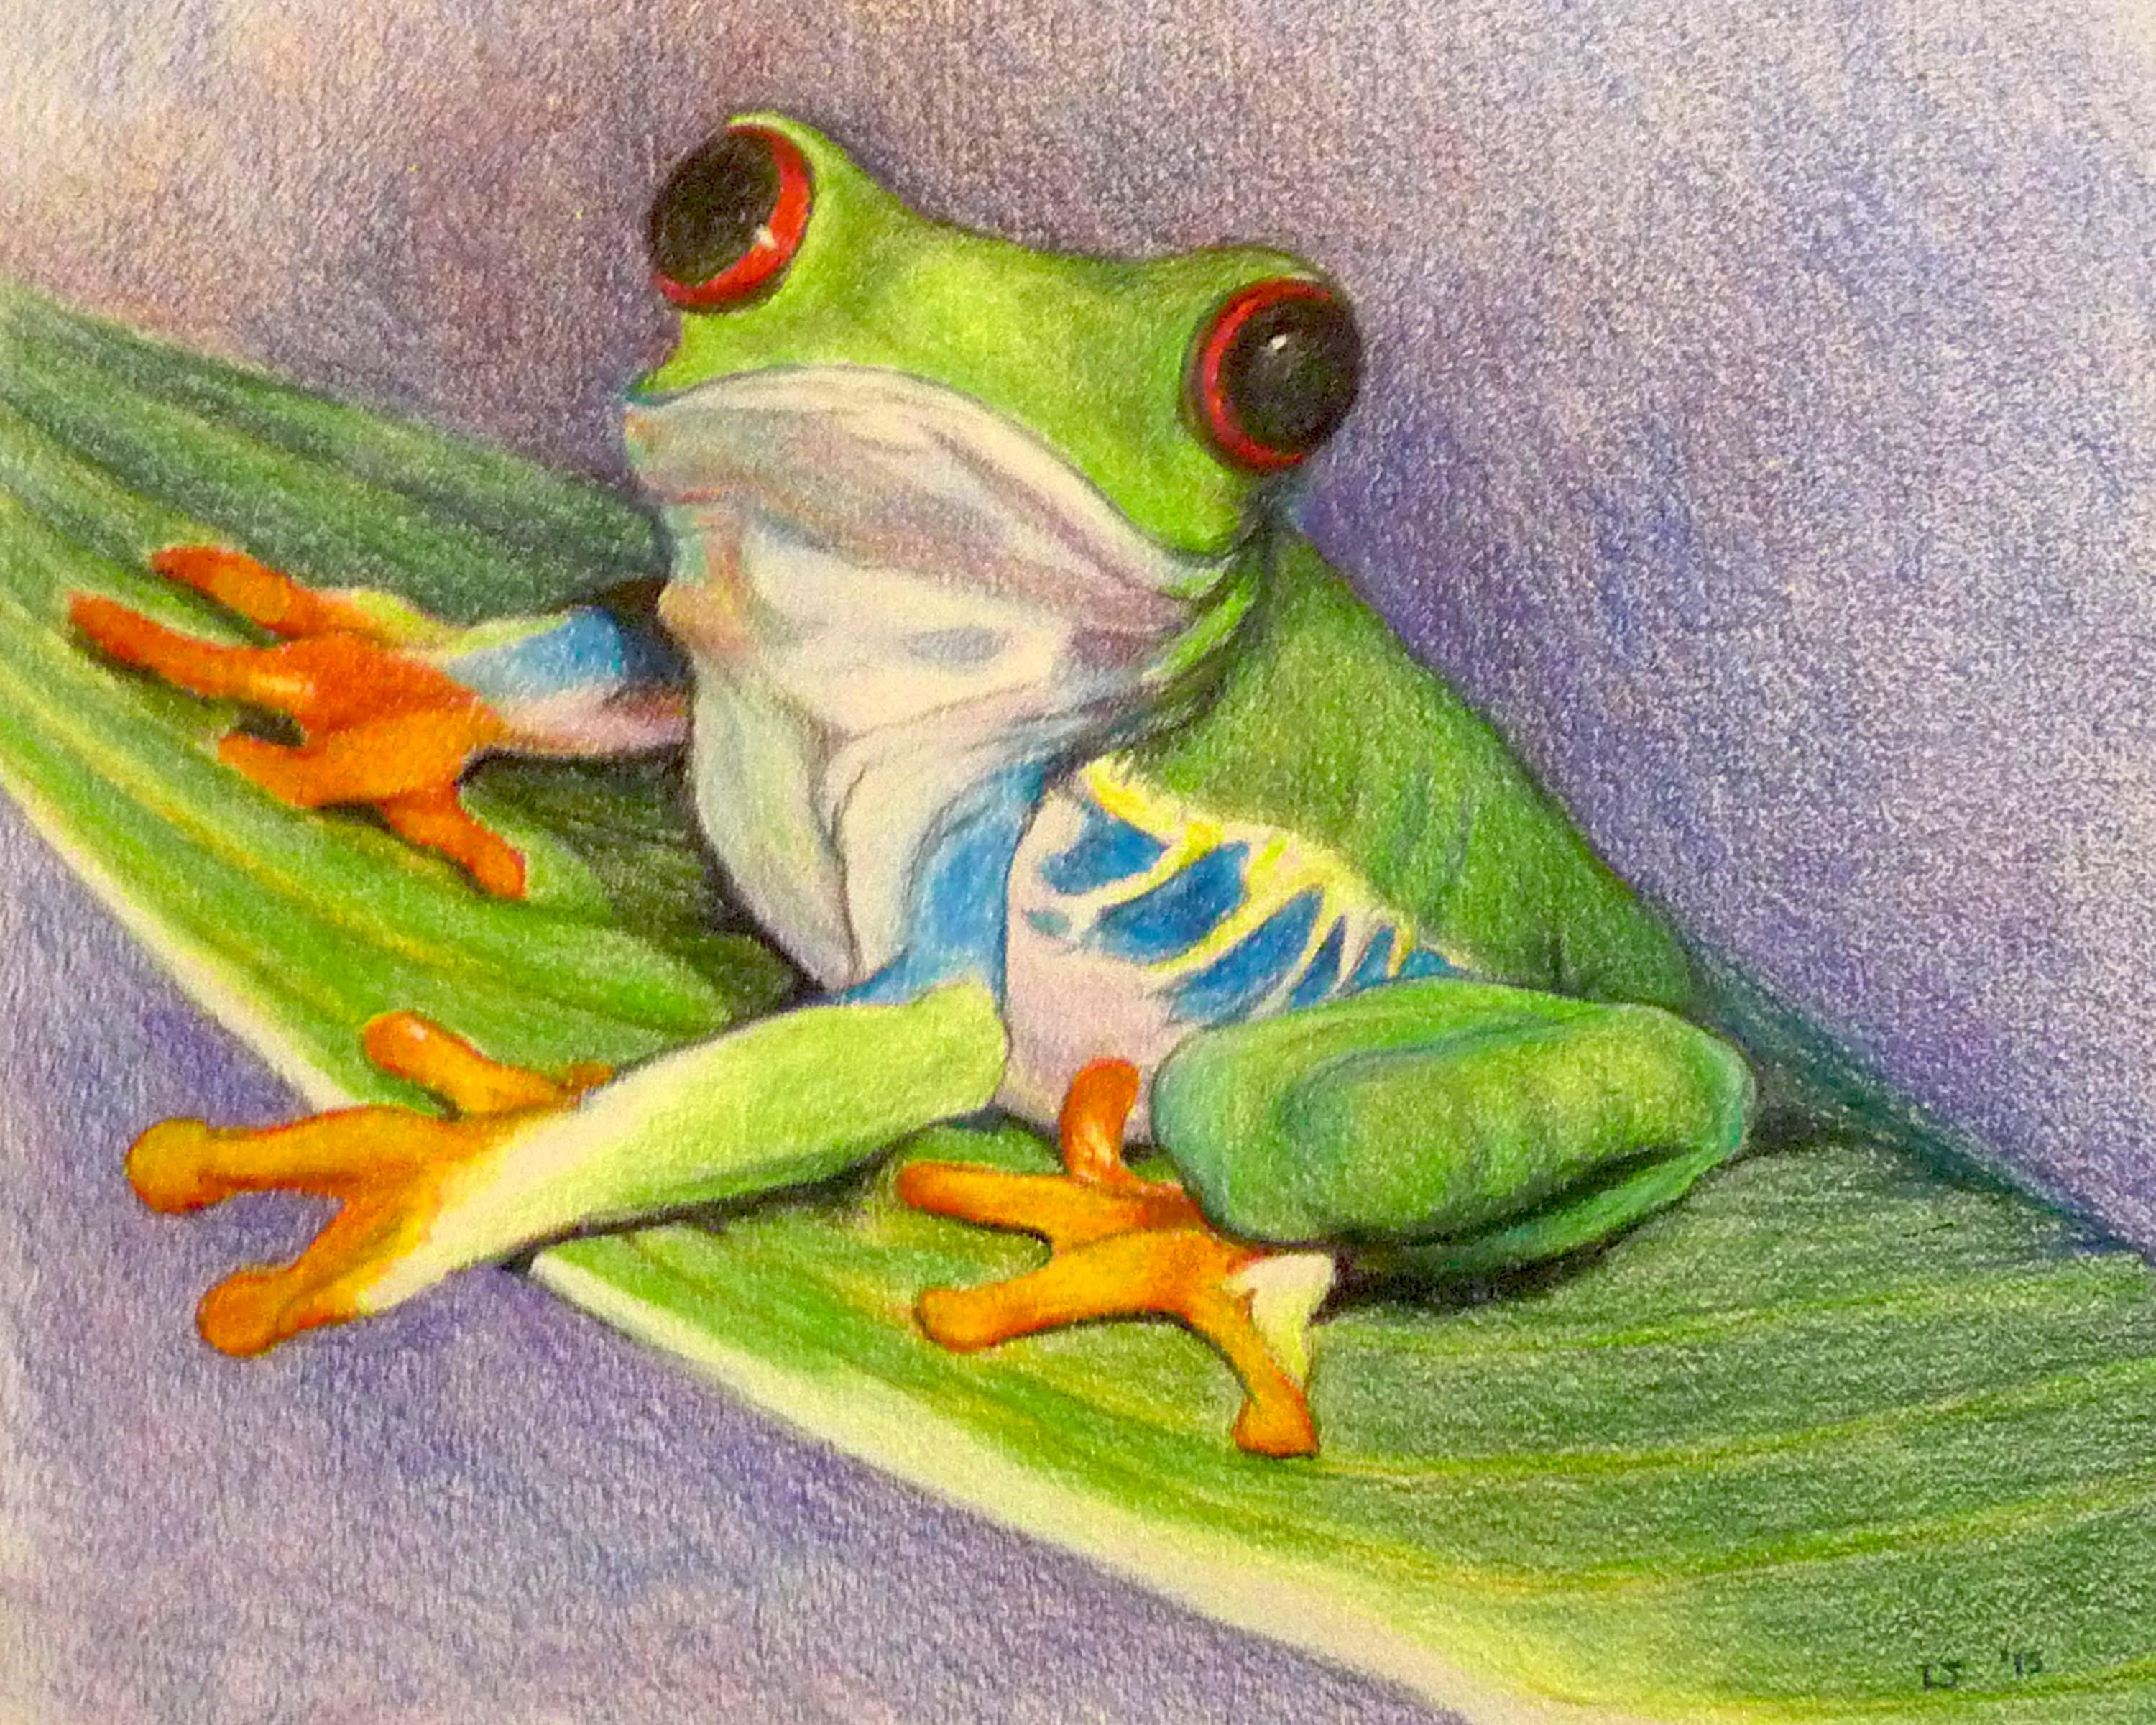 Green Tree Frog colored pencil drawing giclee print